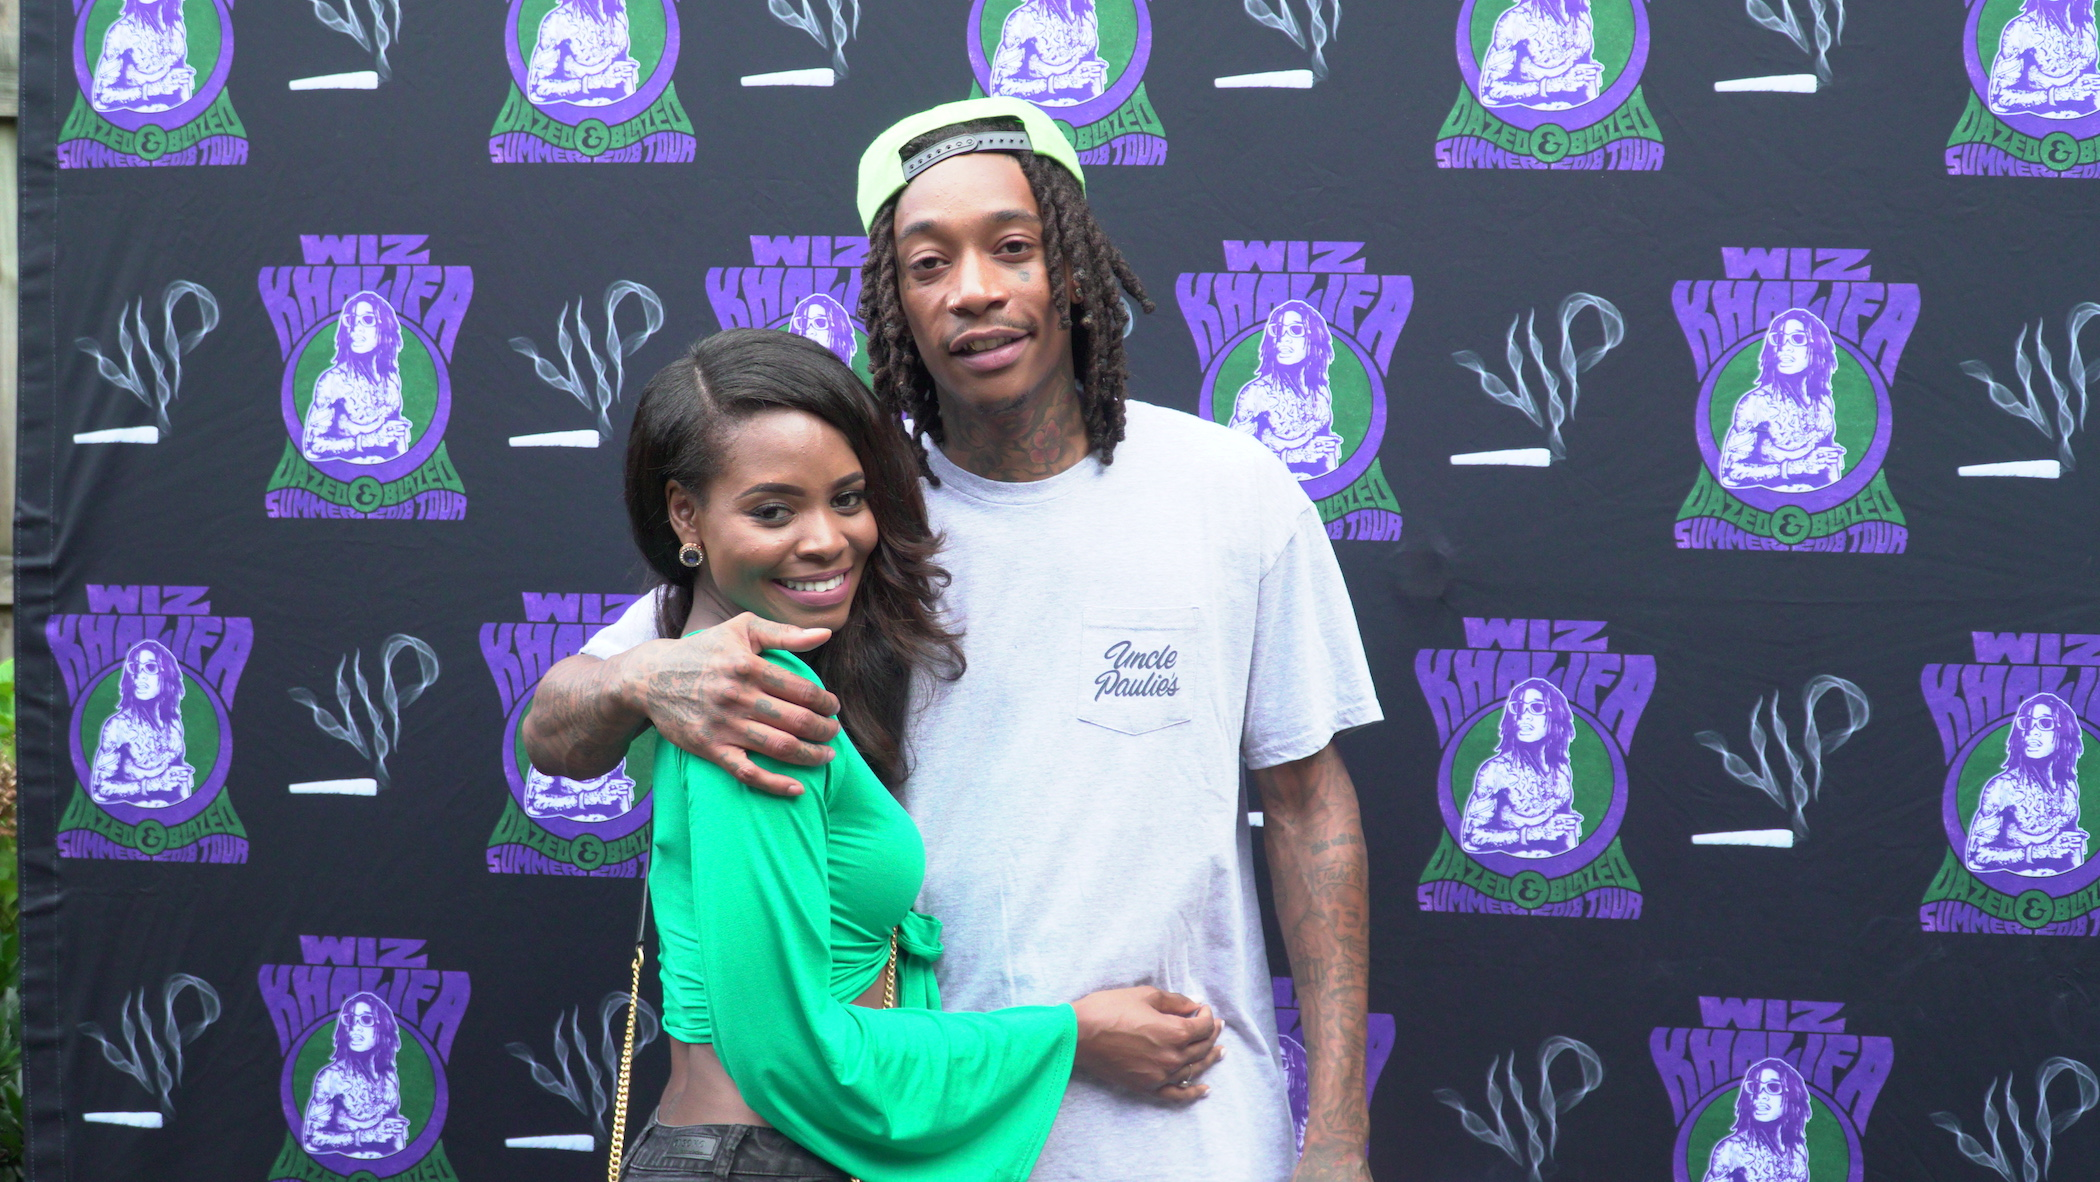 Wiz Khalifa Meet & Greet 2018 Photos